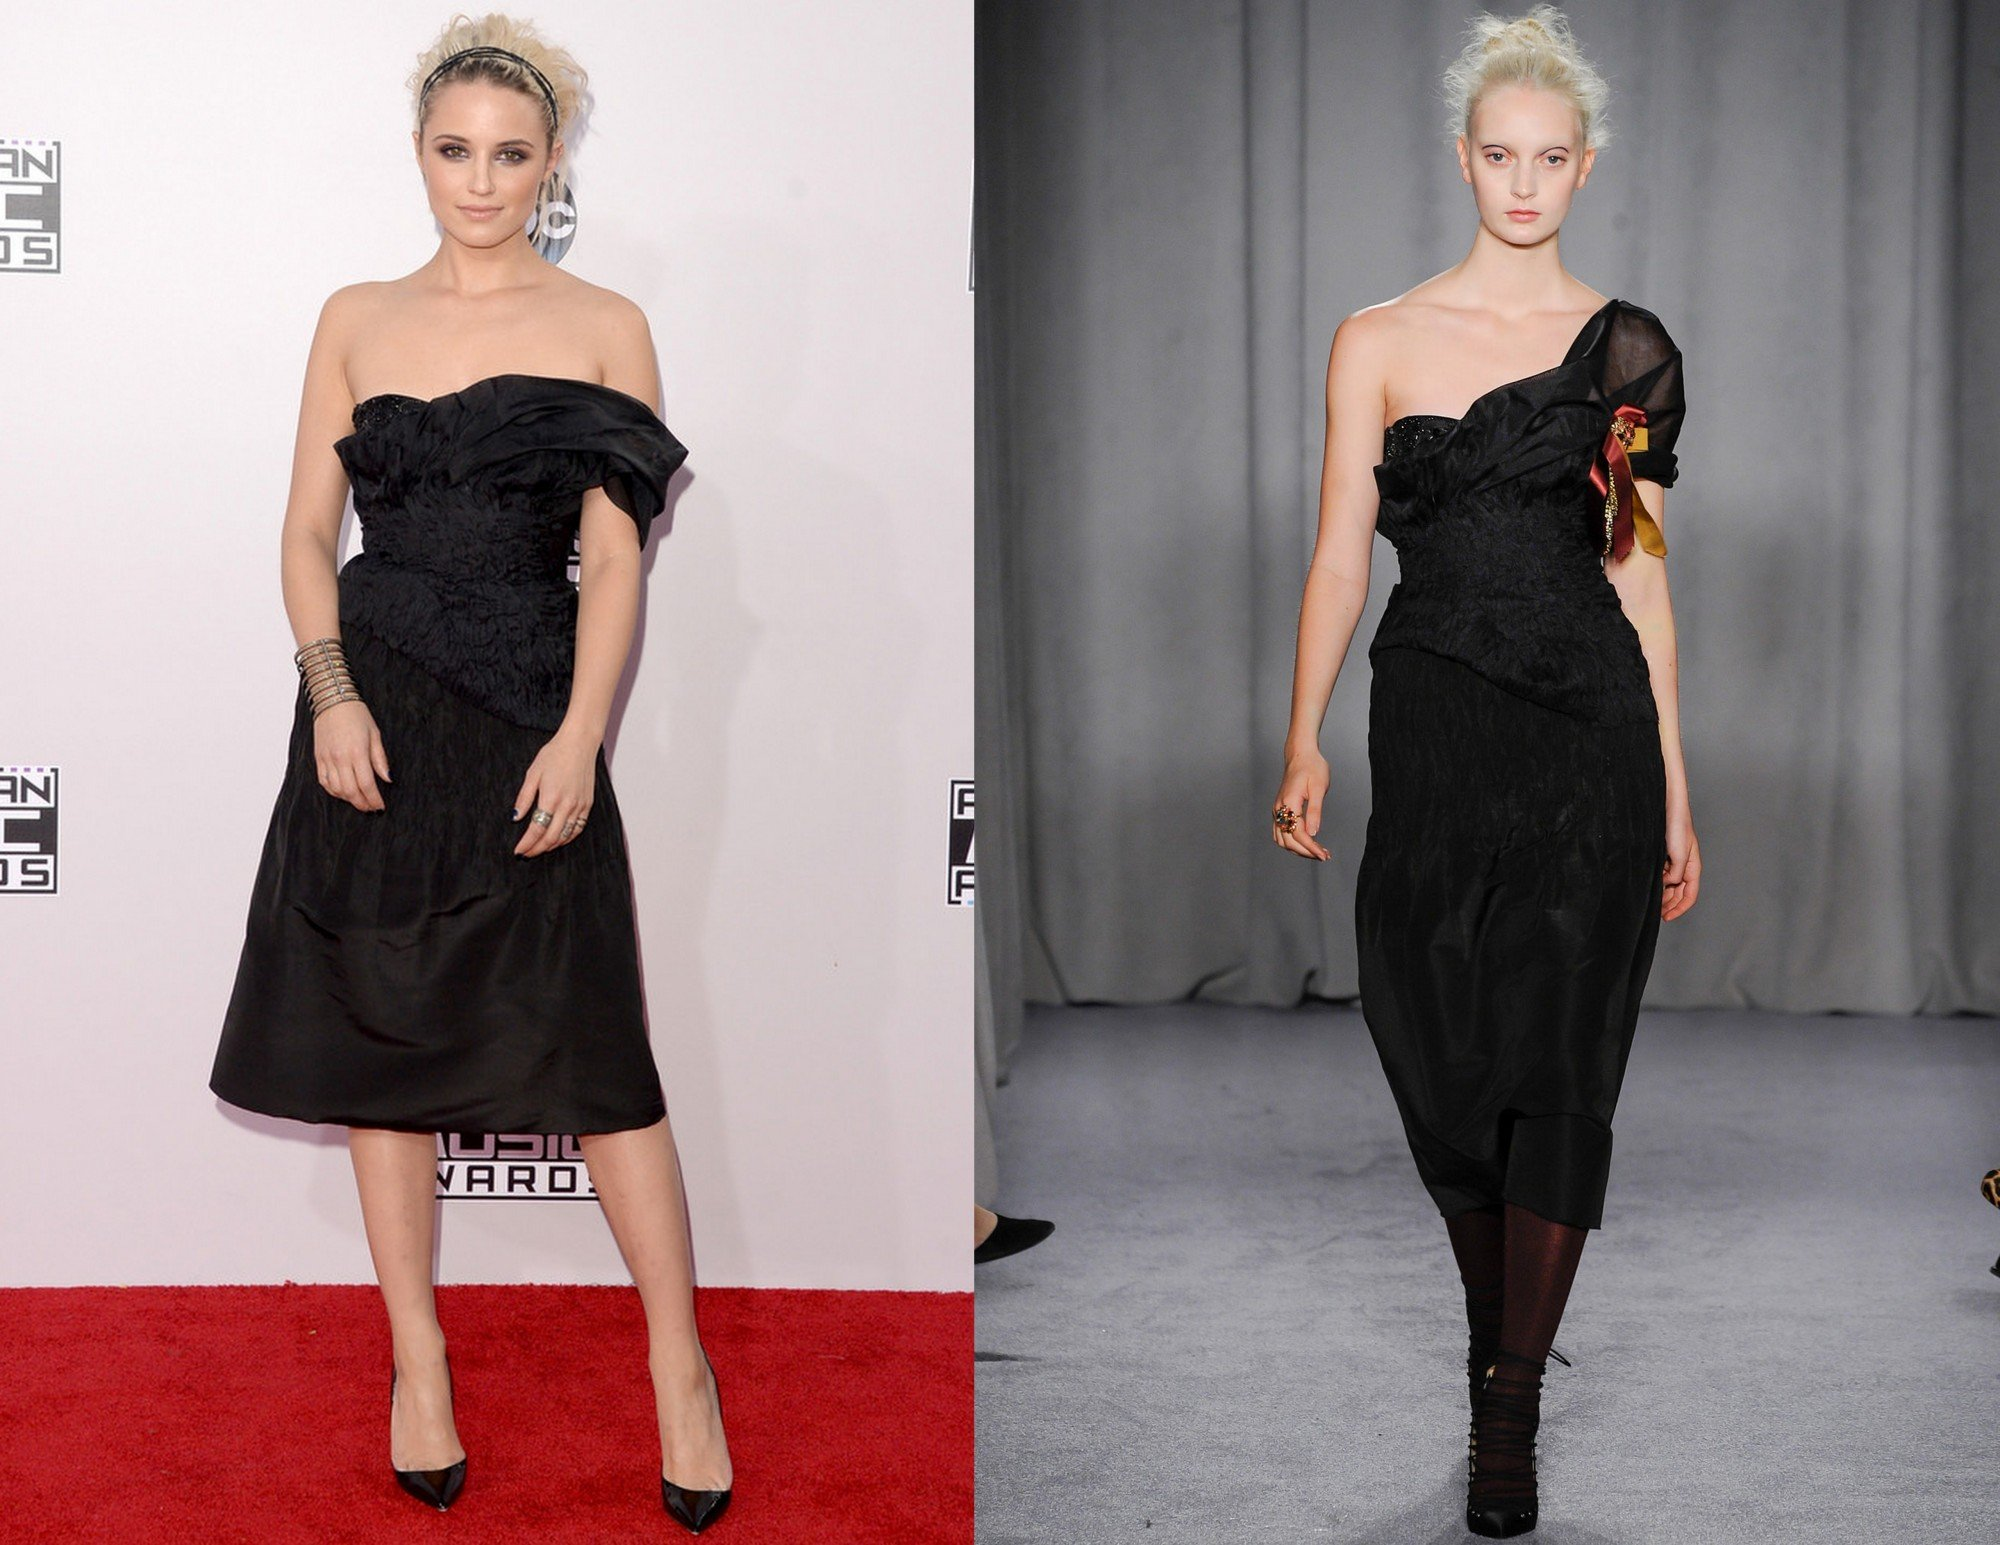 dianna-agron-marchesa-2014-american-music-awards/